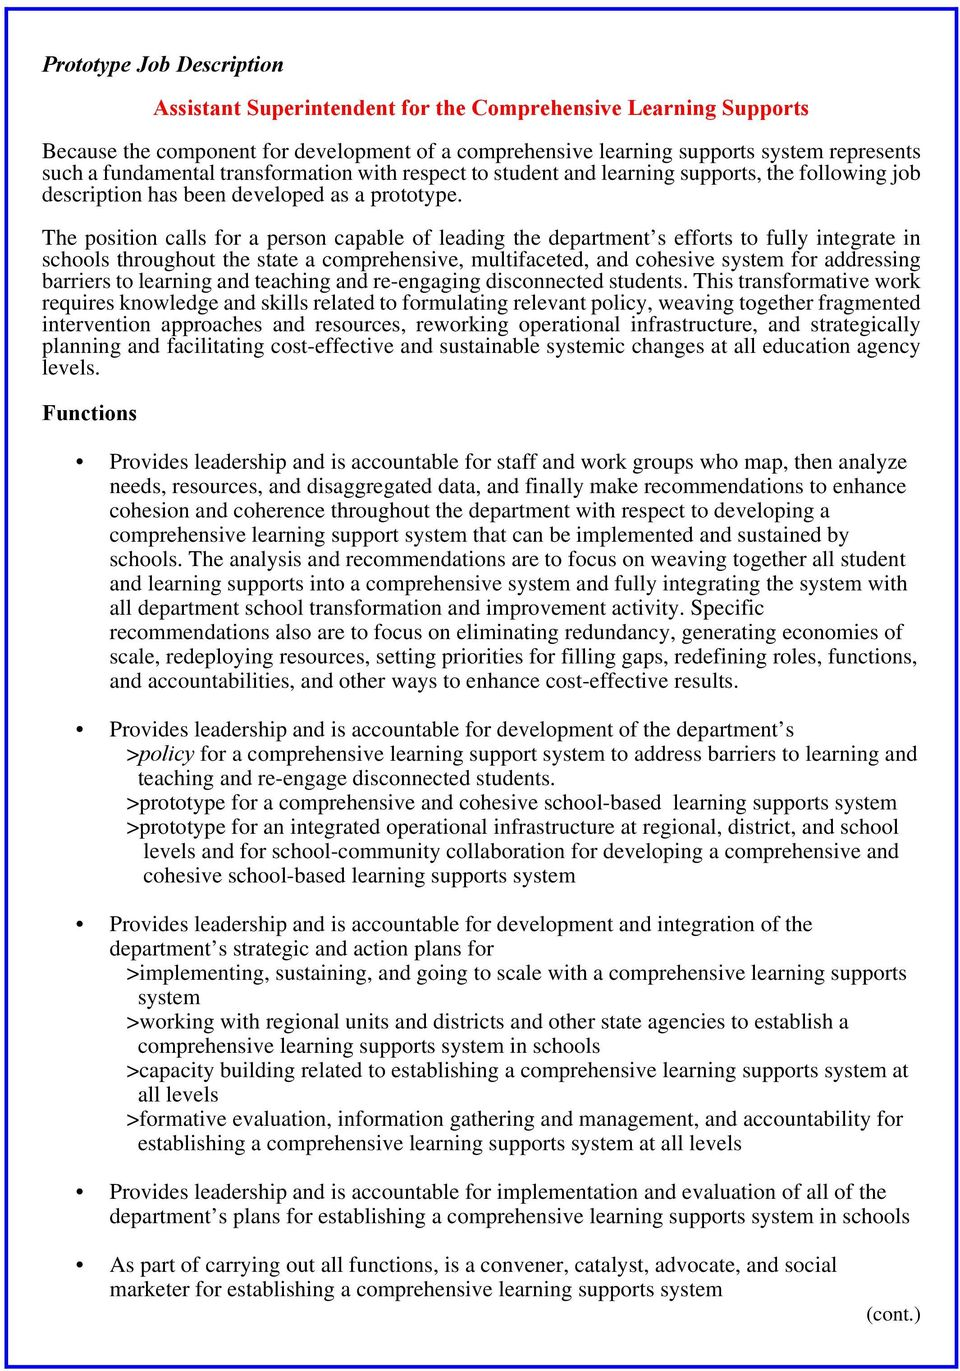 The position calls for a person capable of leading the department s efforts to fully integrate in schools throughout the state a comprehensive, multifaceted, and cohesive system for addressing